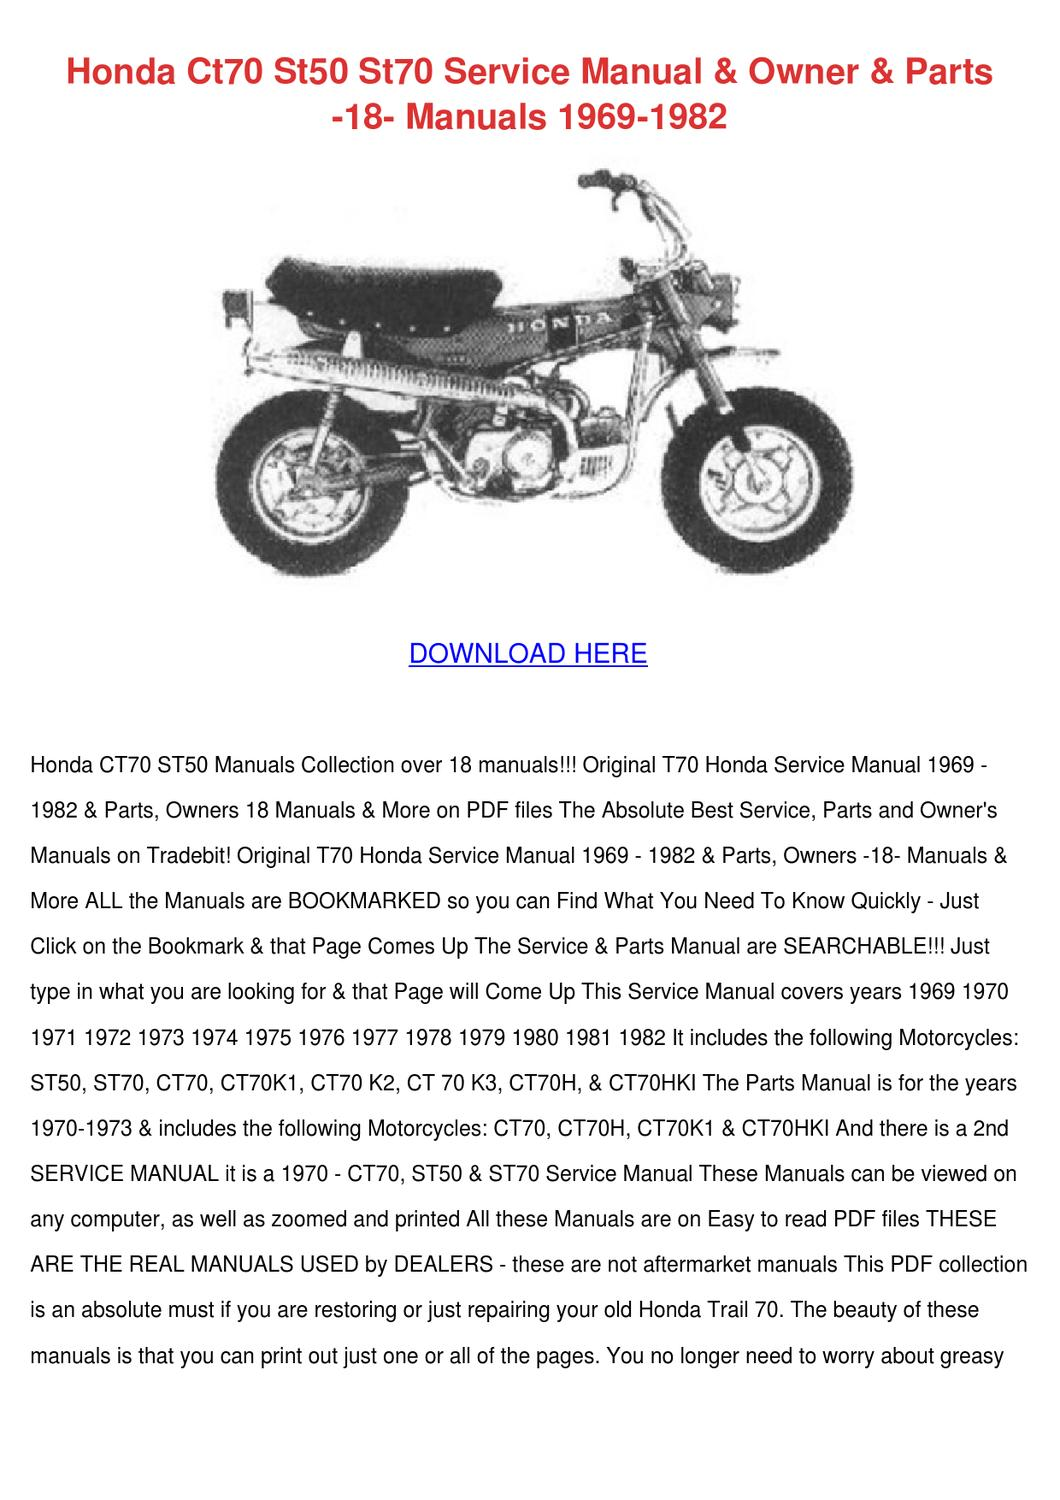 Honda Ct70 St50 St70 Service Manual Owner Par By Buena Feinberg Issuu 1970 Fuel Tank